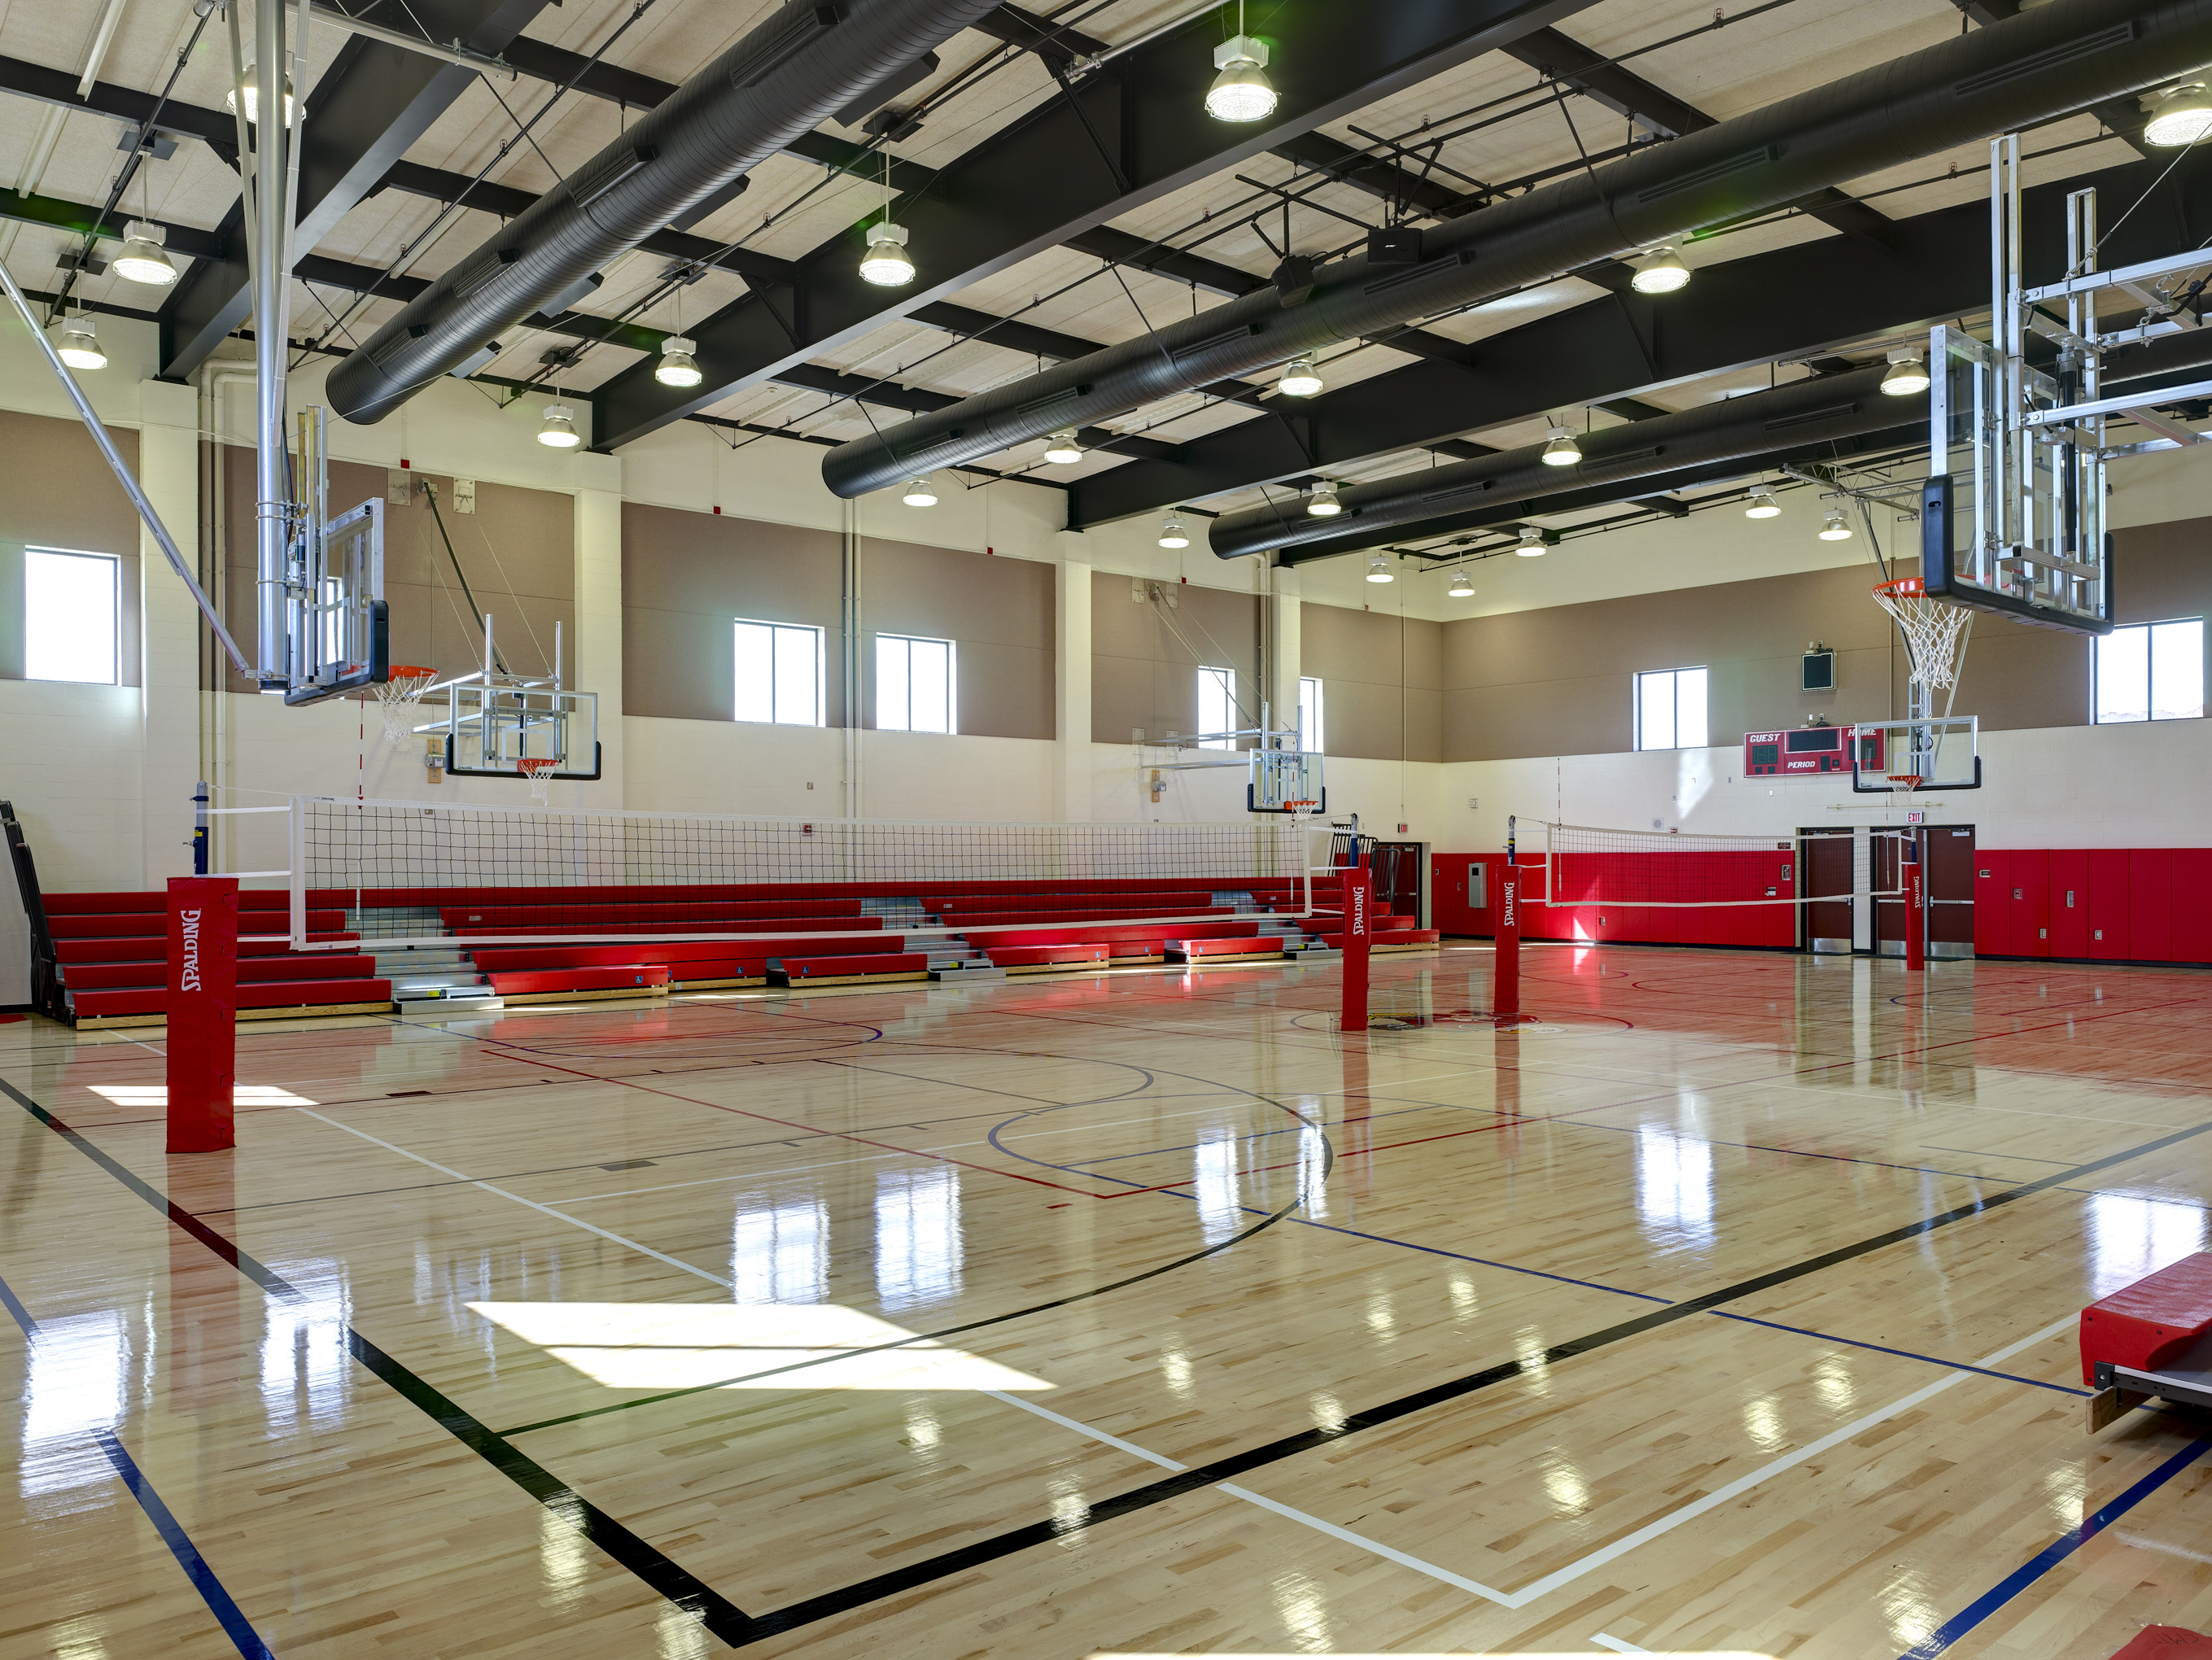 Flewelling moody tropico middle school for Sport court cost per square foot